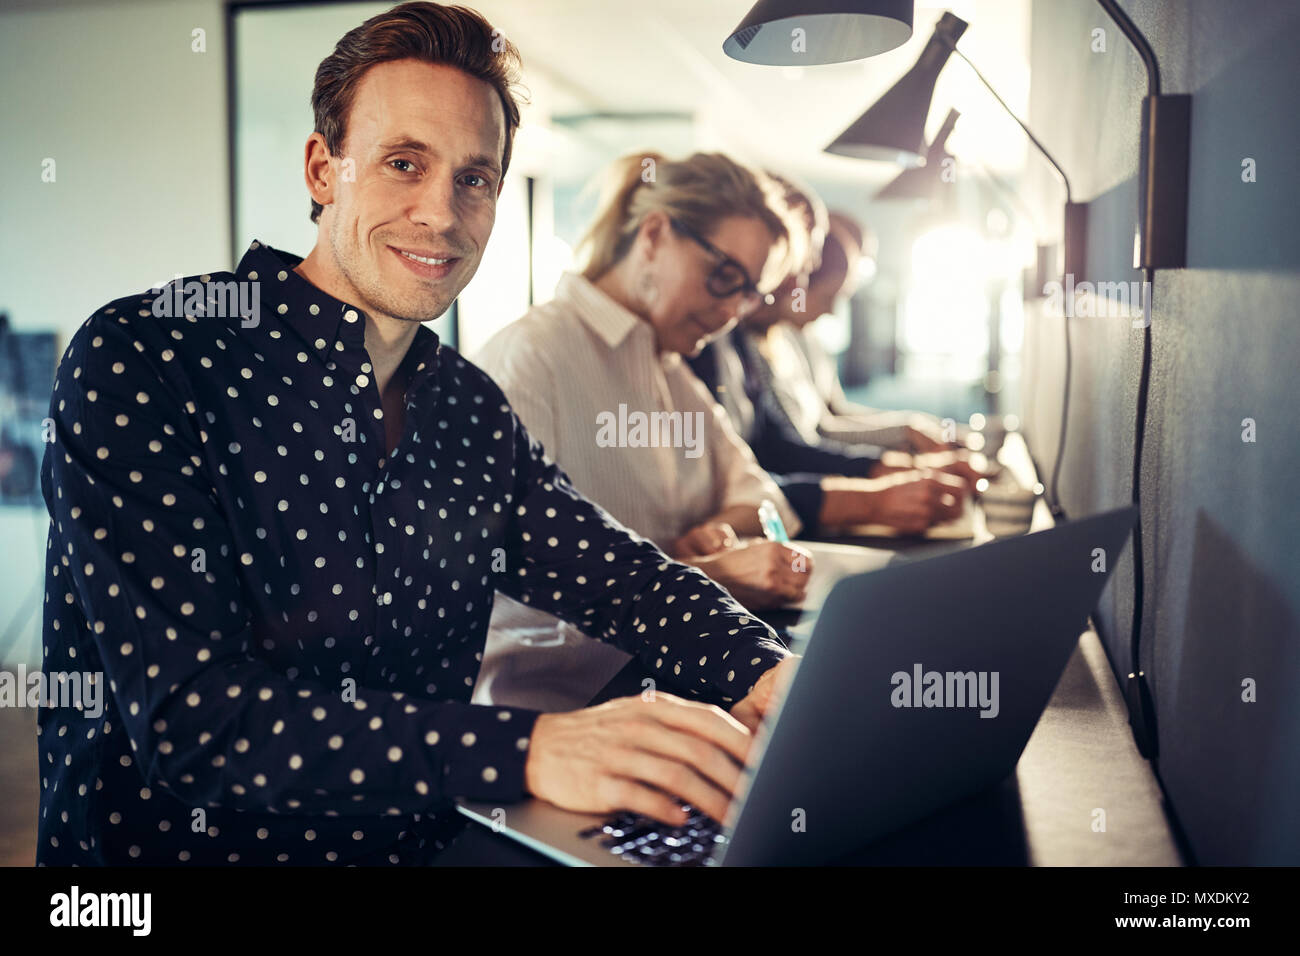 Smiling young designer working on a laptop while sitting in a row with coworkers at a table in a modern office - Stock Image